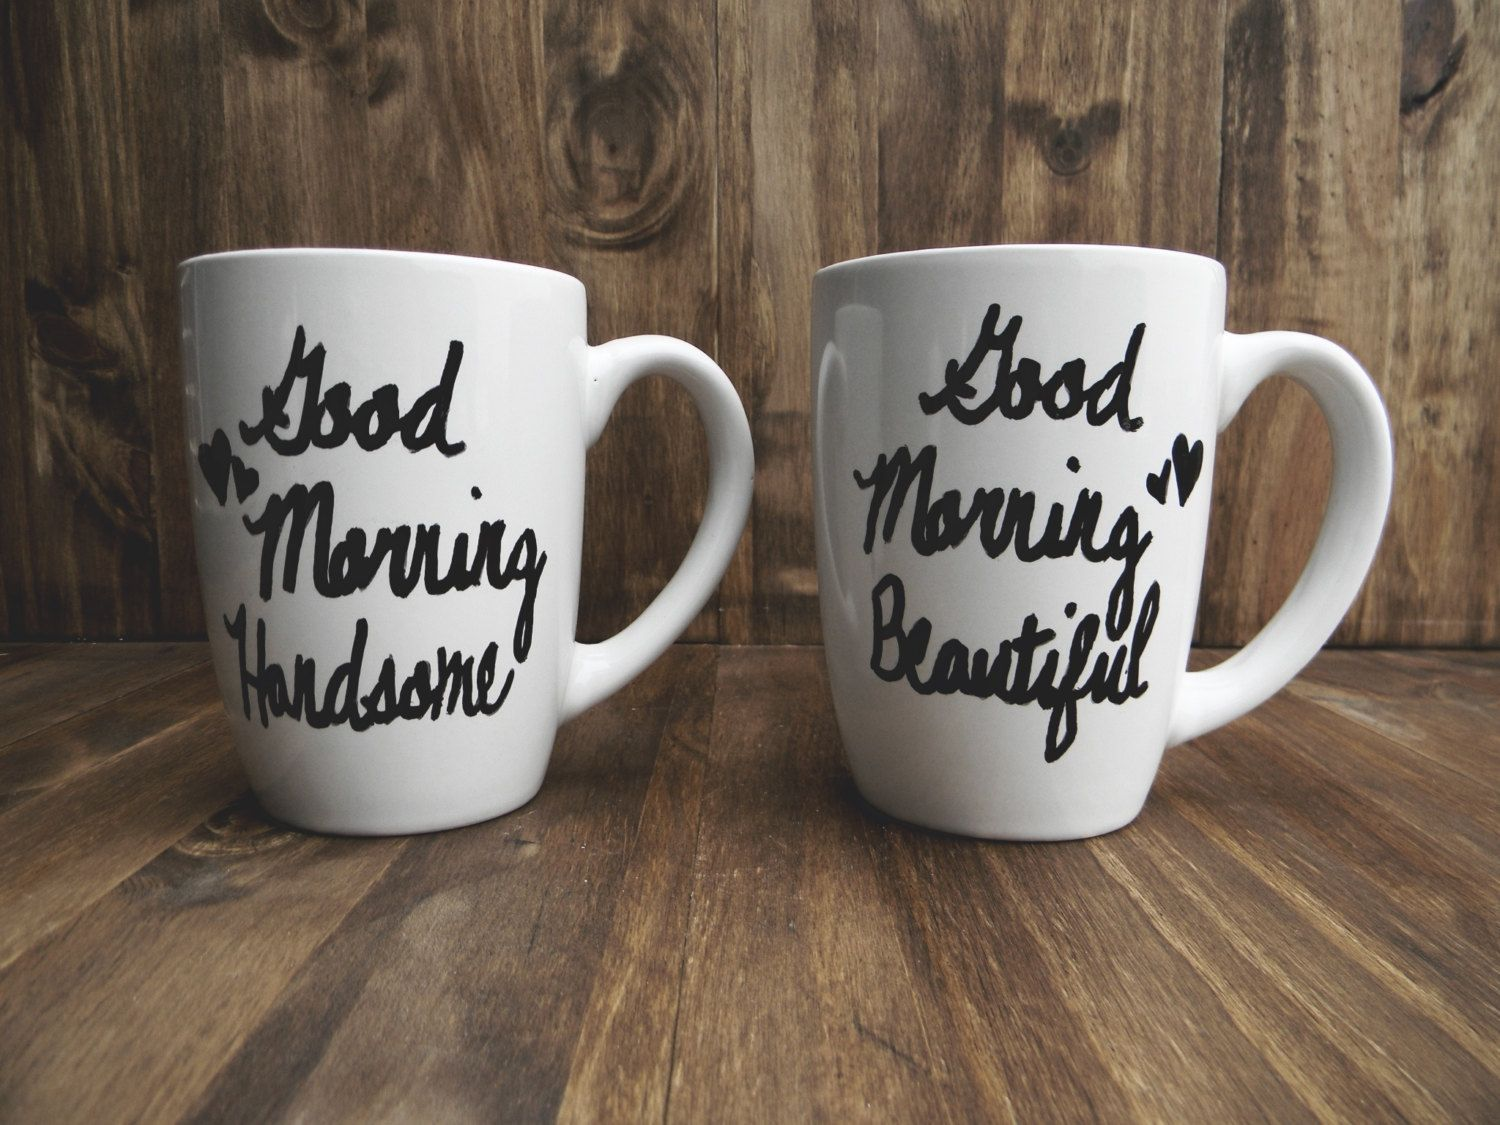 Practical Wedding Gifts For The Newlyweds: Set Of 2 Good Morning Beautiful & Handsome Ceramic Mugs